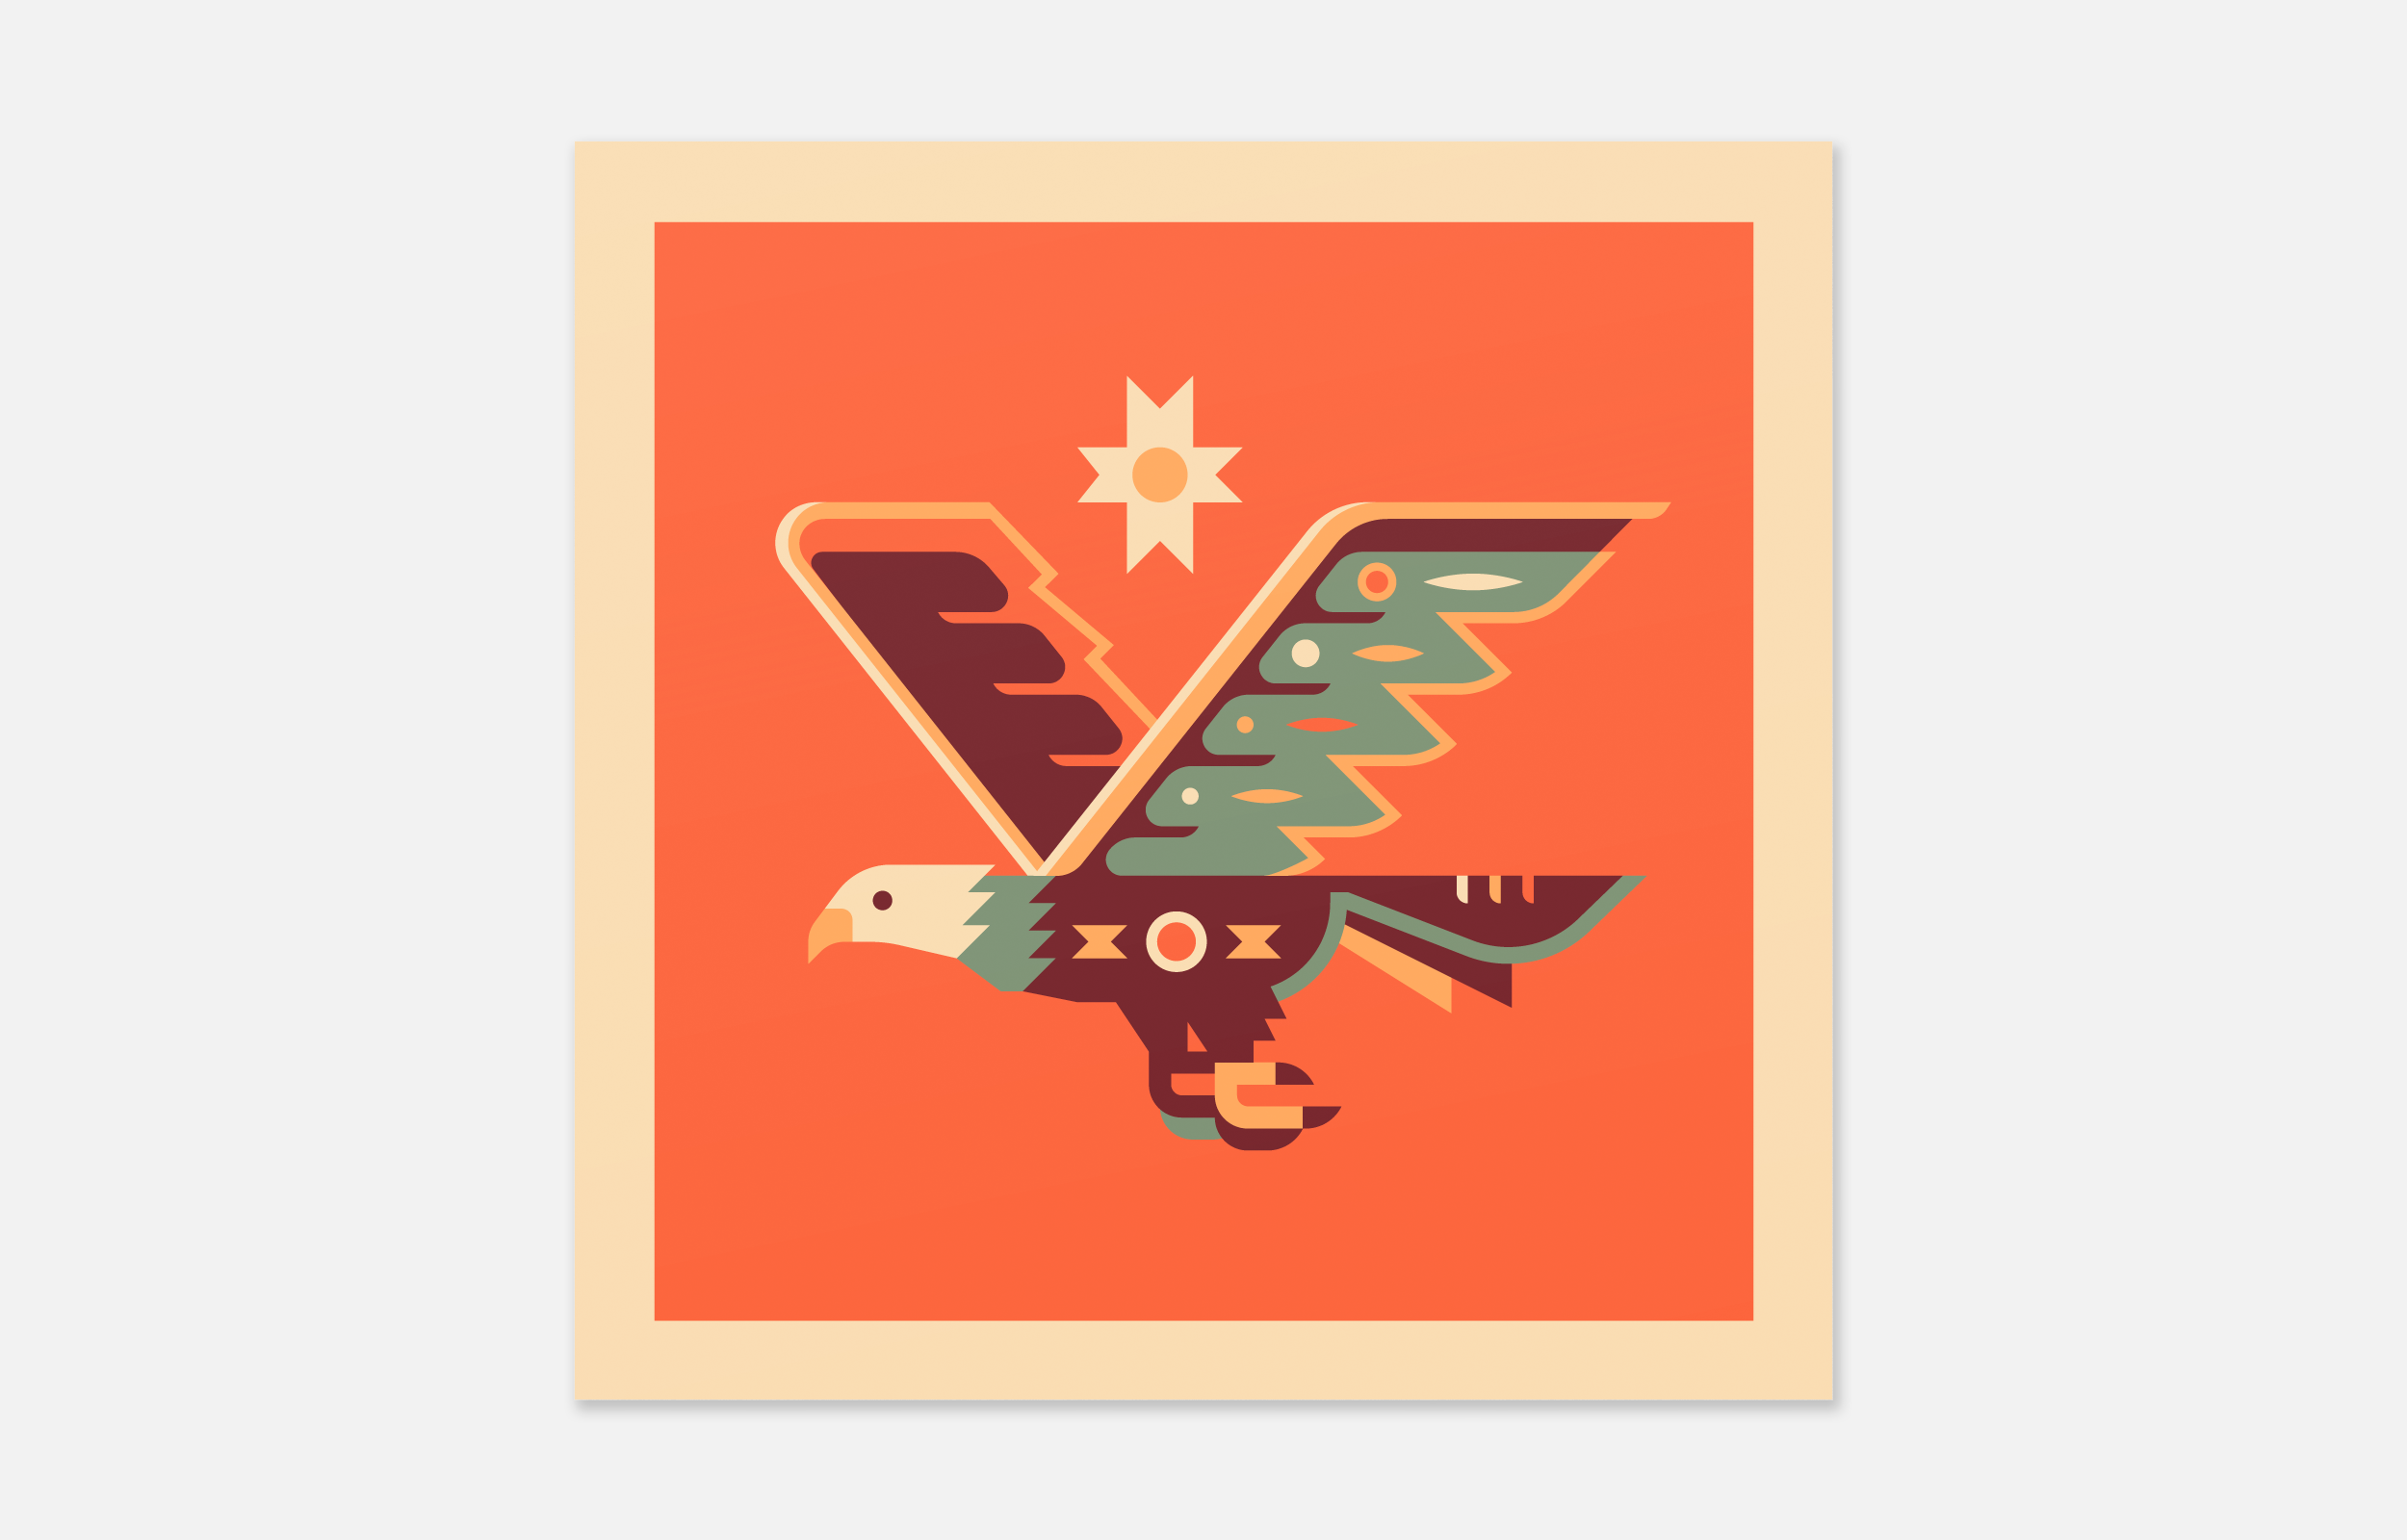 Eagle totem design by Matt Anderson and Canopy Design. Limited color, geometric pattern illustration with Navajo southwest art style.